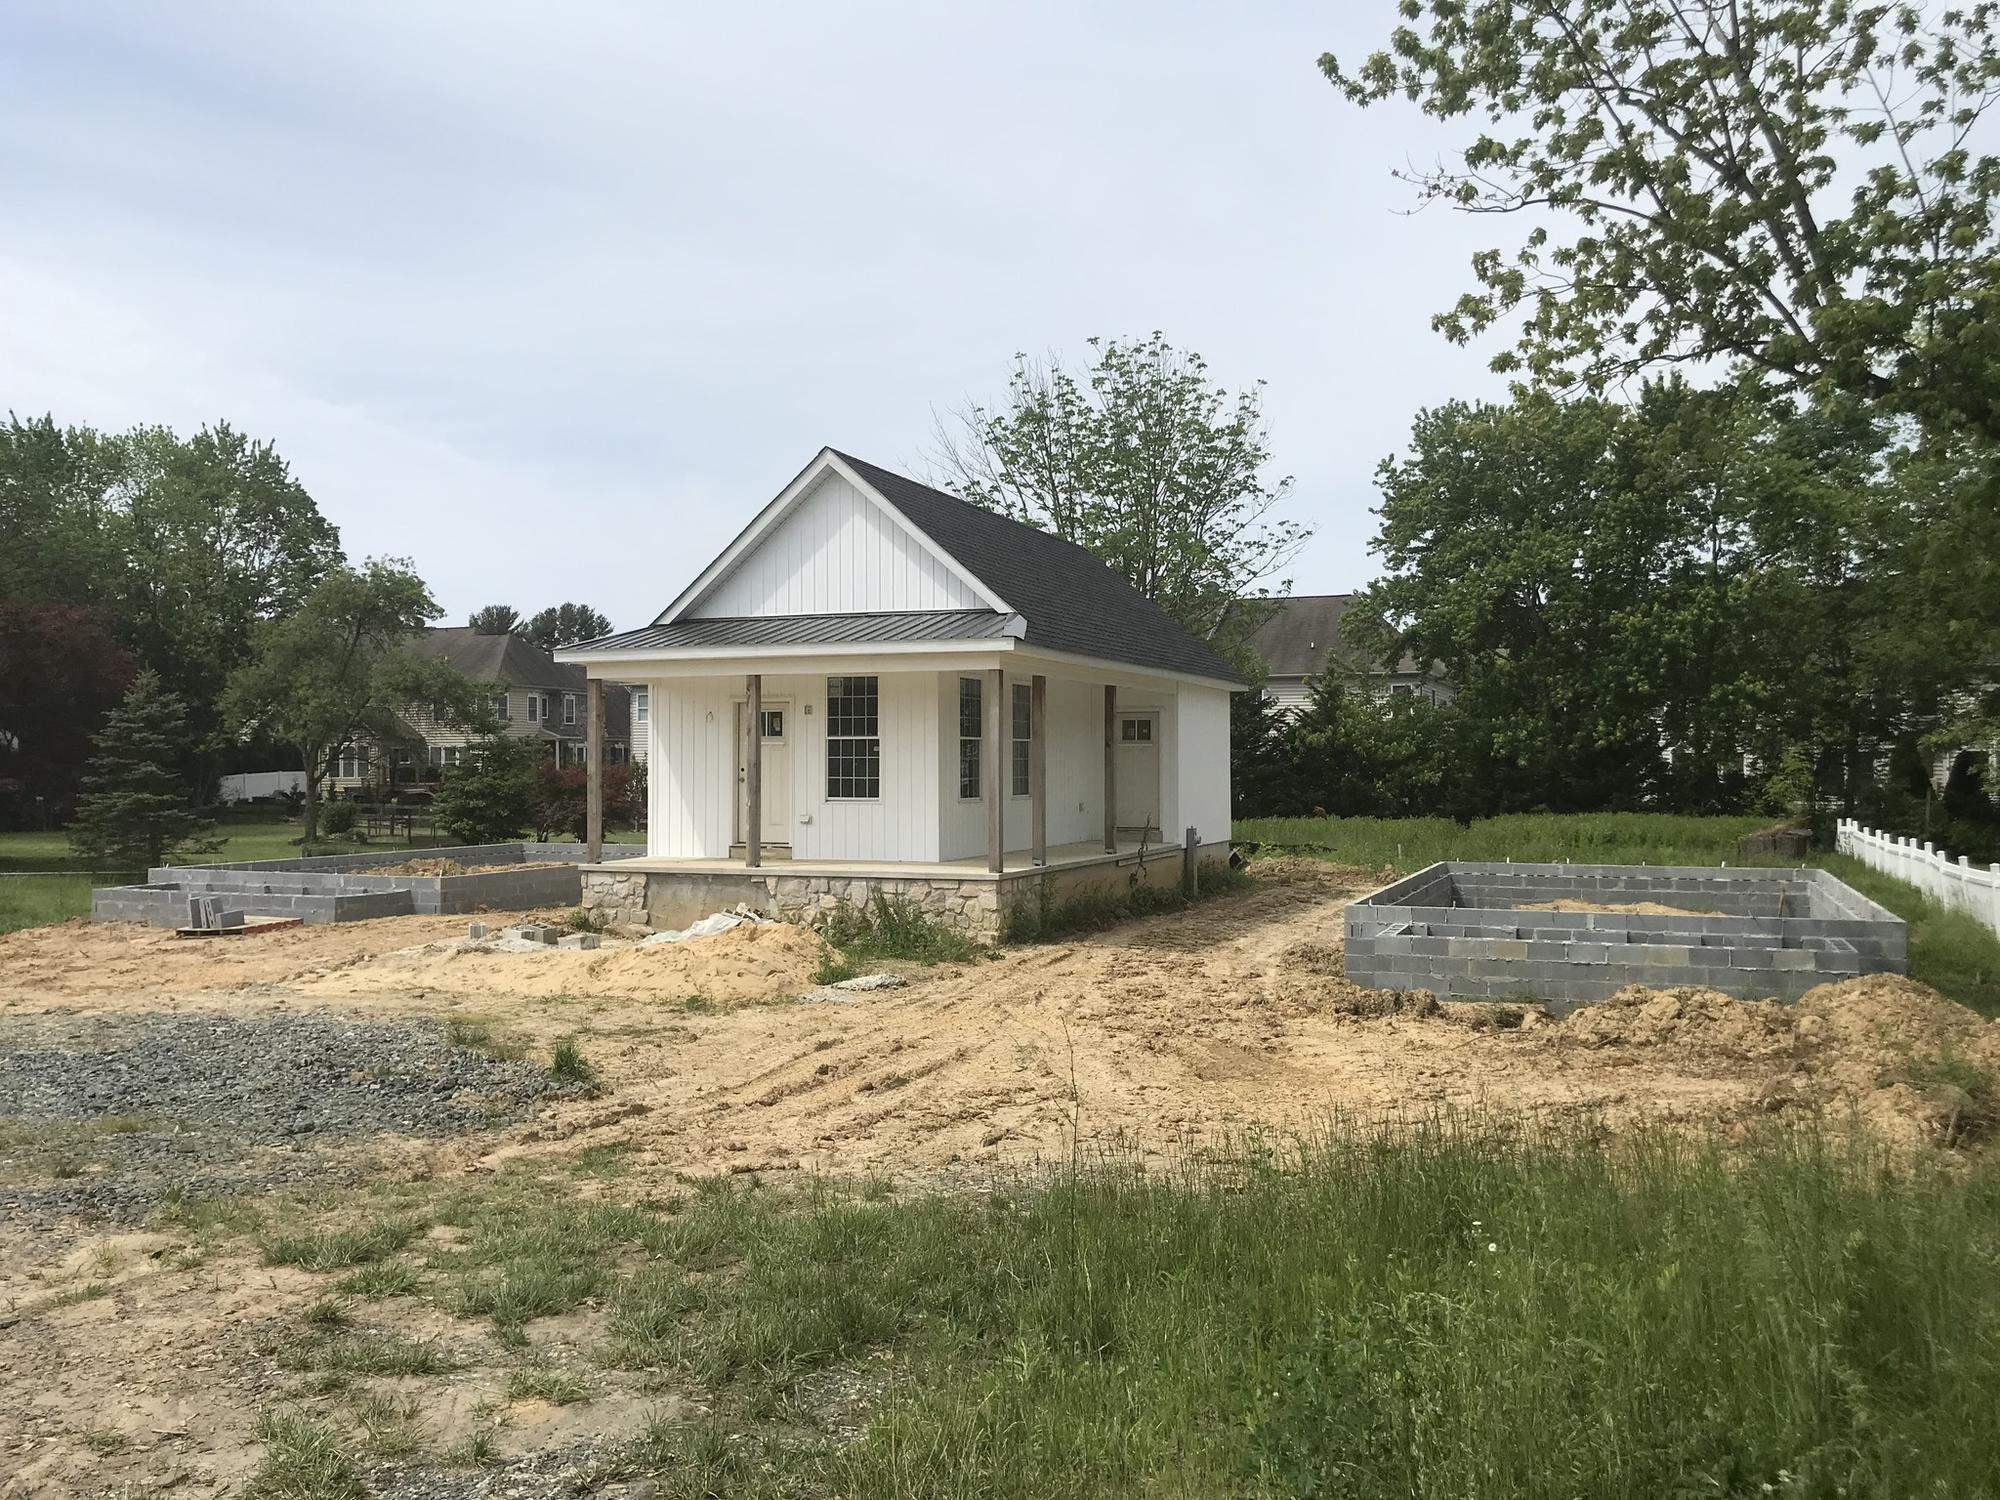 Image result for Construction begins on second, third tiny houses in Bel Air, as first nears completion